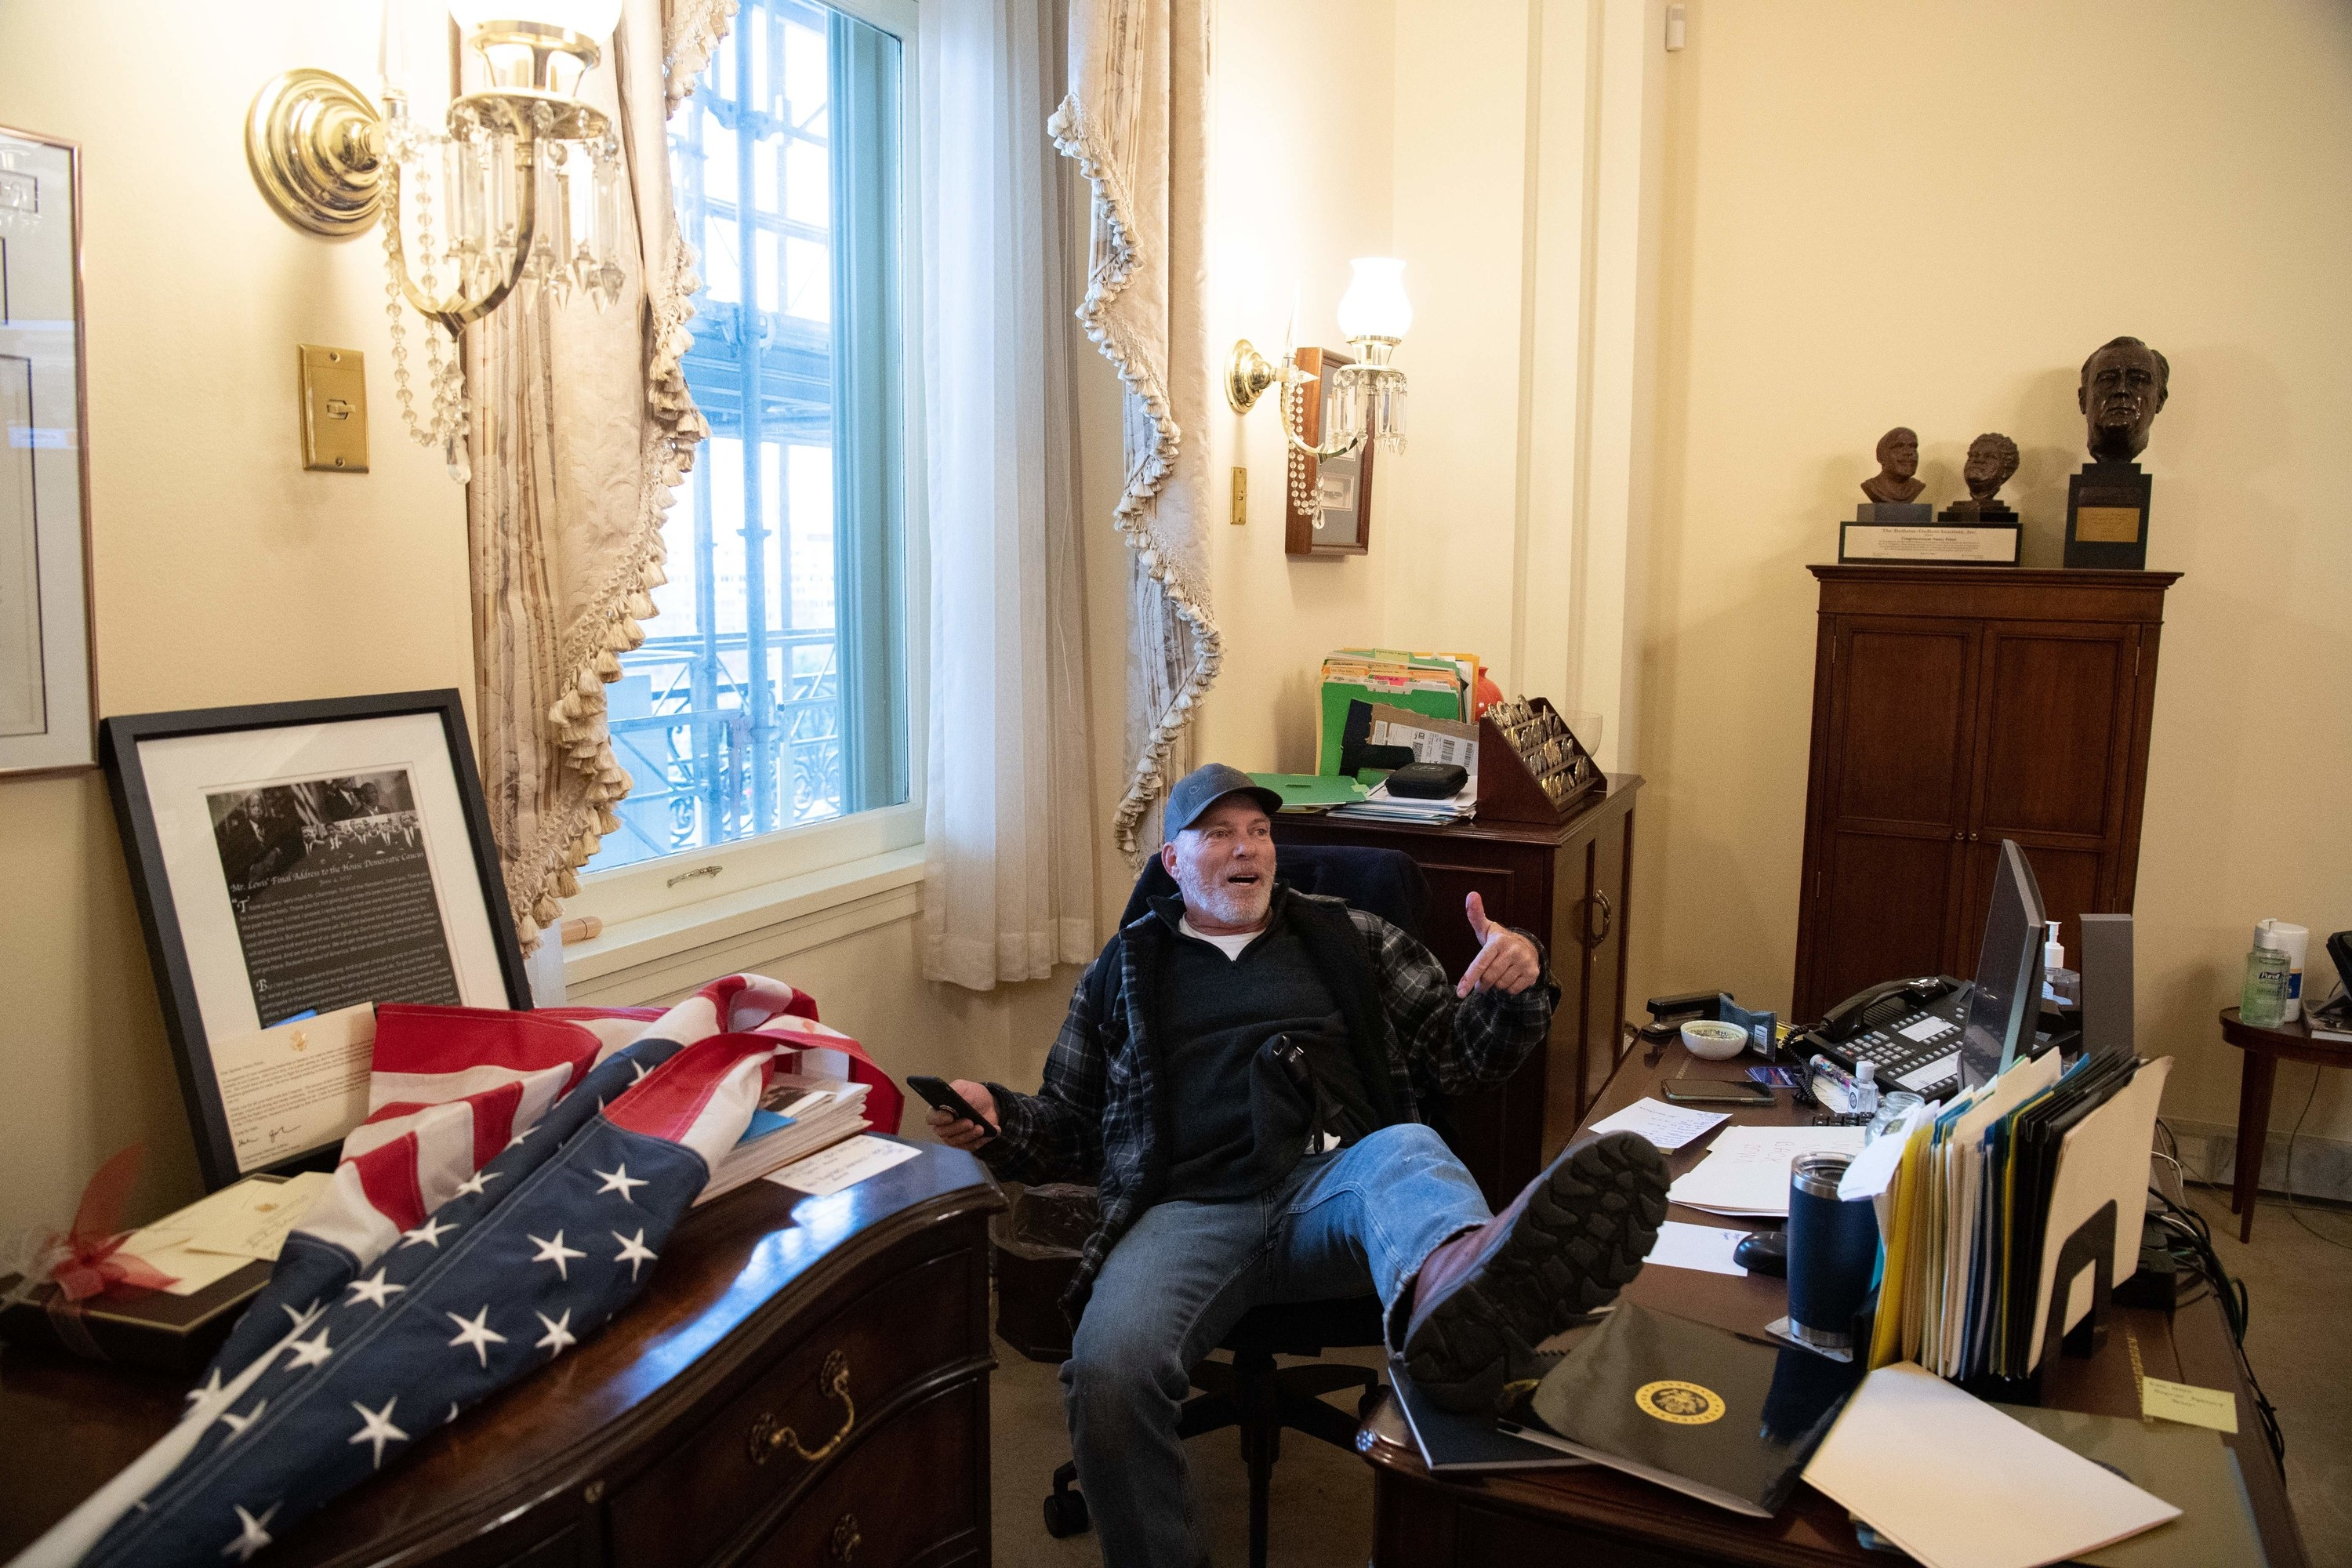 A Trump supporter sitting in Nancy Pelosi's office